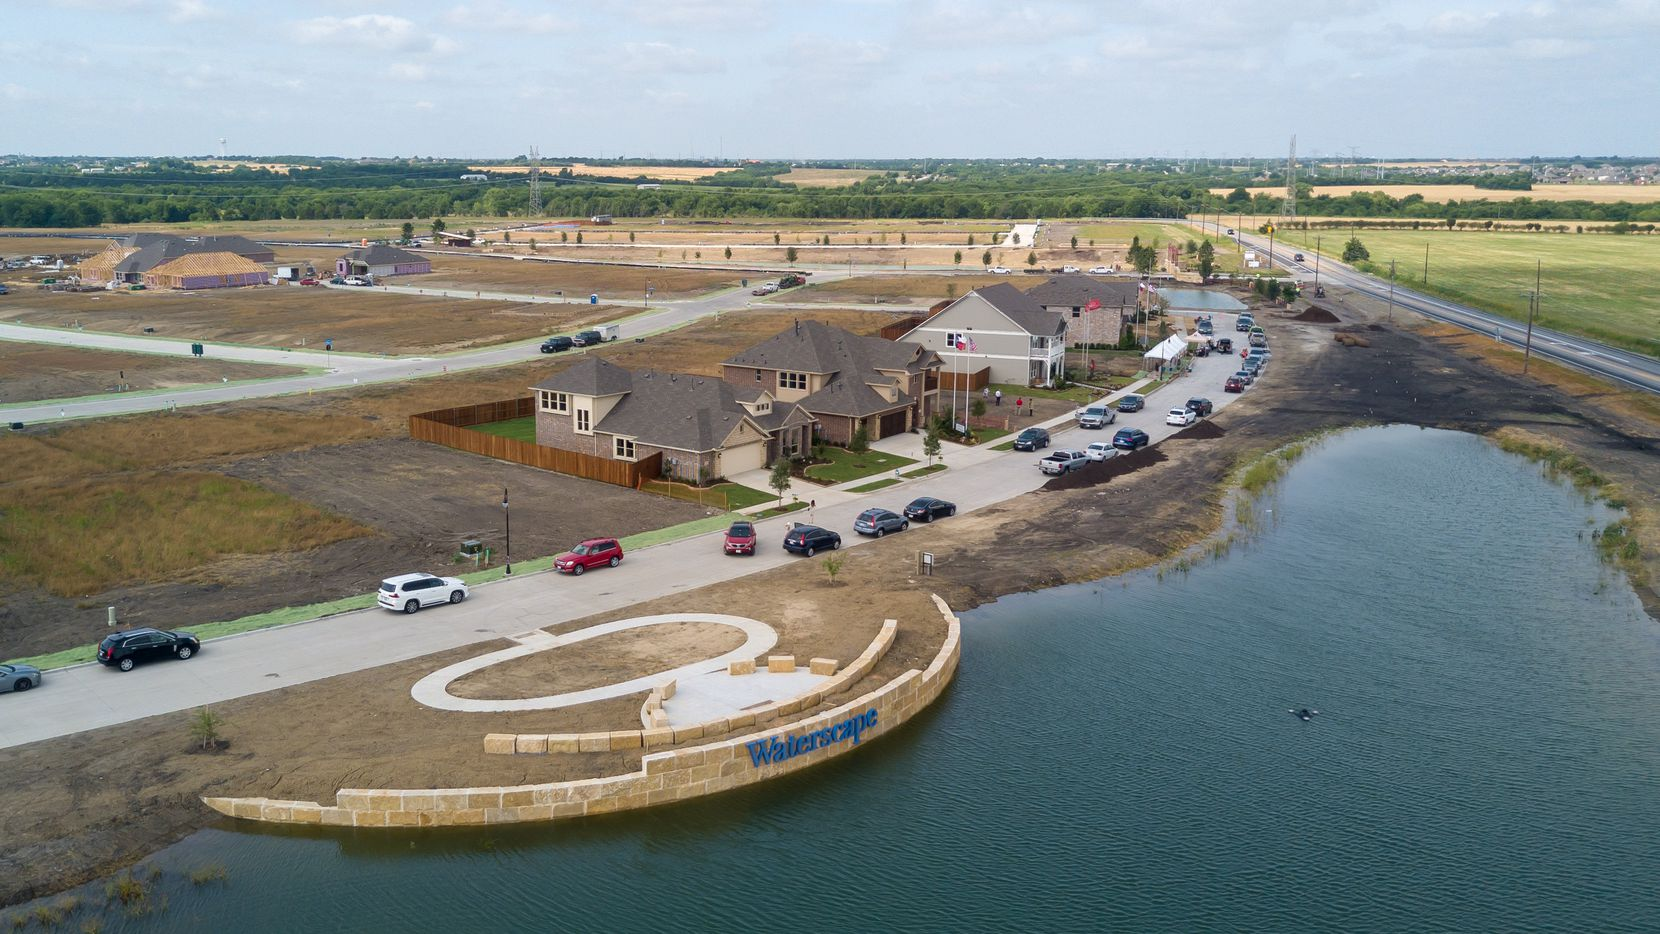 The first phase of 275 houses is under development in the Waterscape community in Royce City.